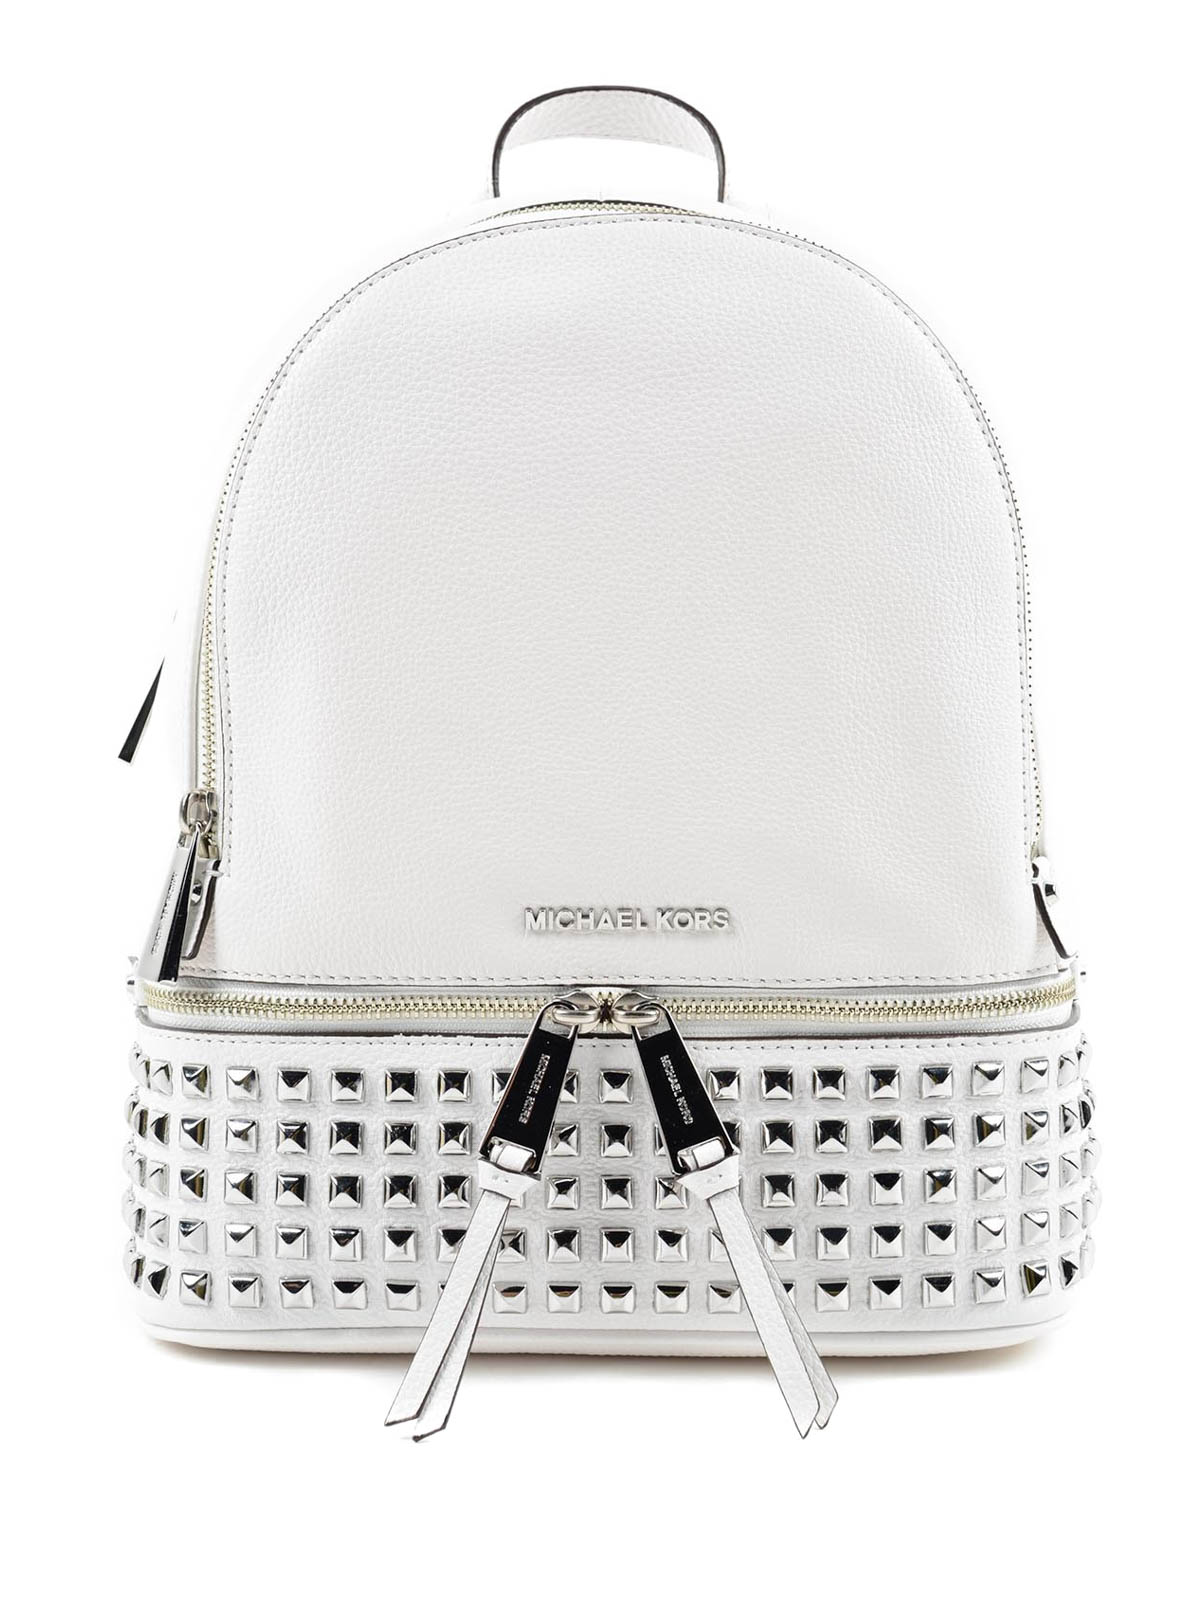 4a038693ea49 ... discount michael kors backpacks rhea small studded leather backpack  2a007 16f02